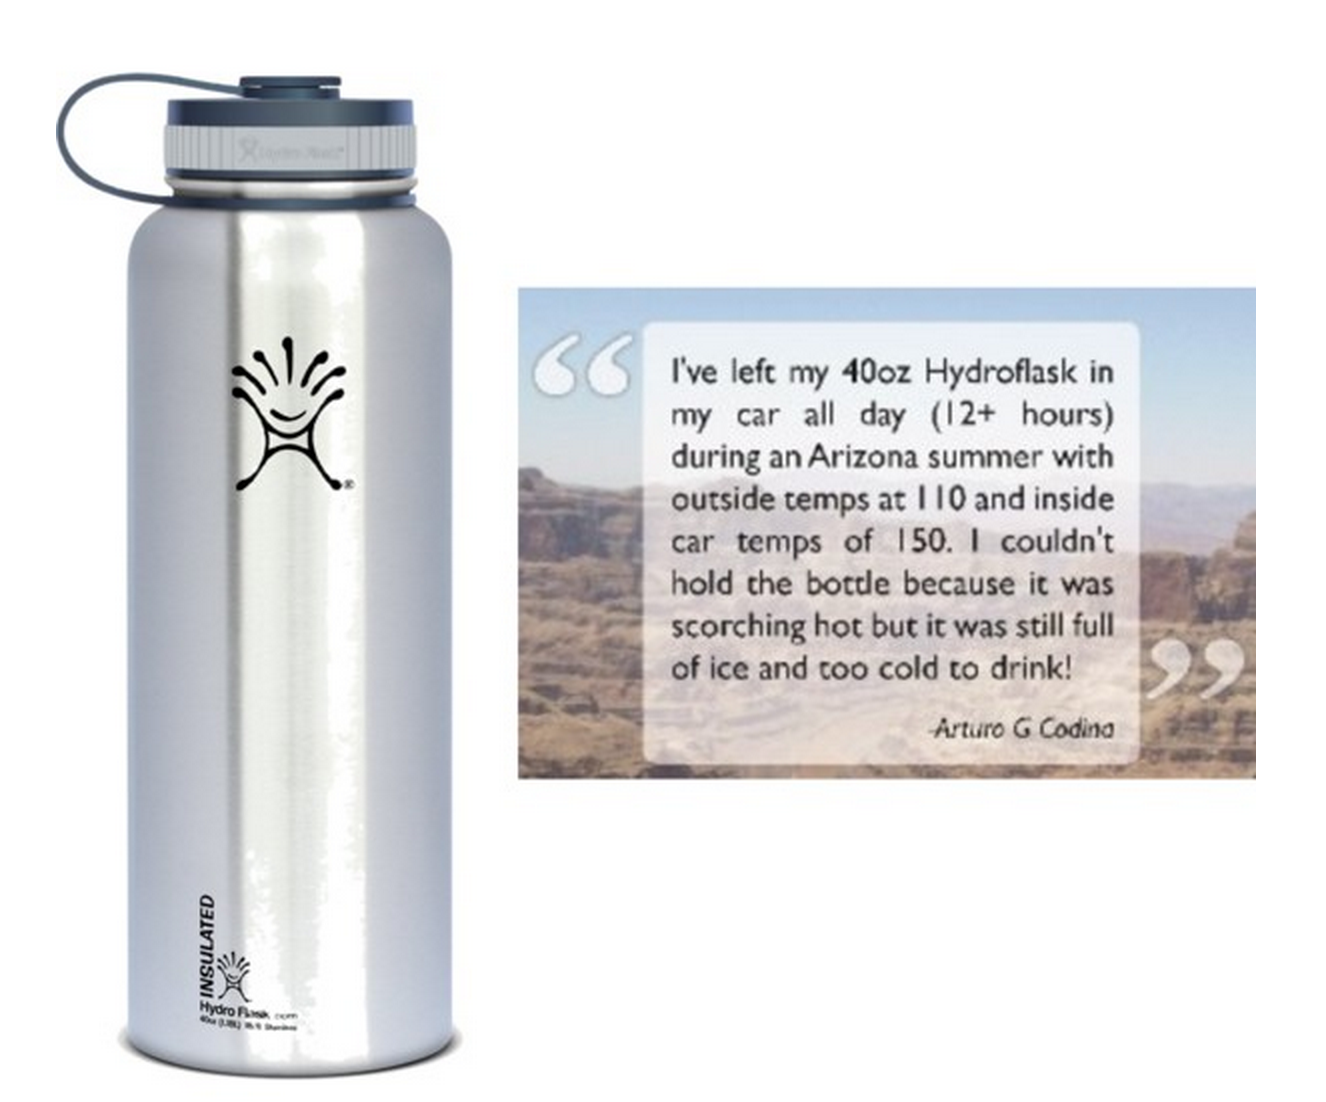 Hydro Flask Insulated Stainless Steel Water Bottle Only $26.70 (Amazing Reviews!)